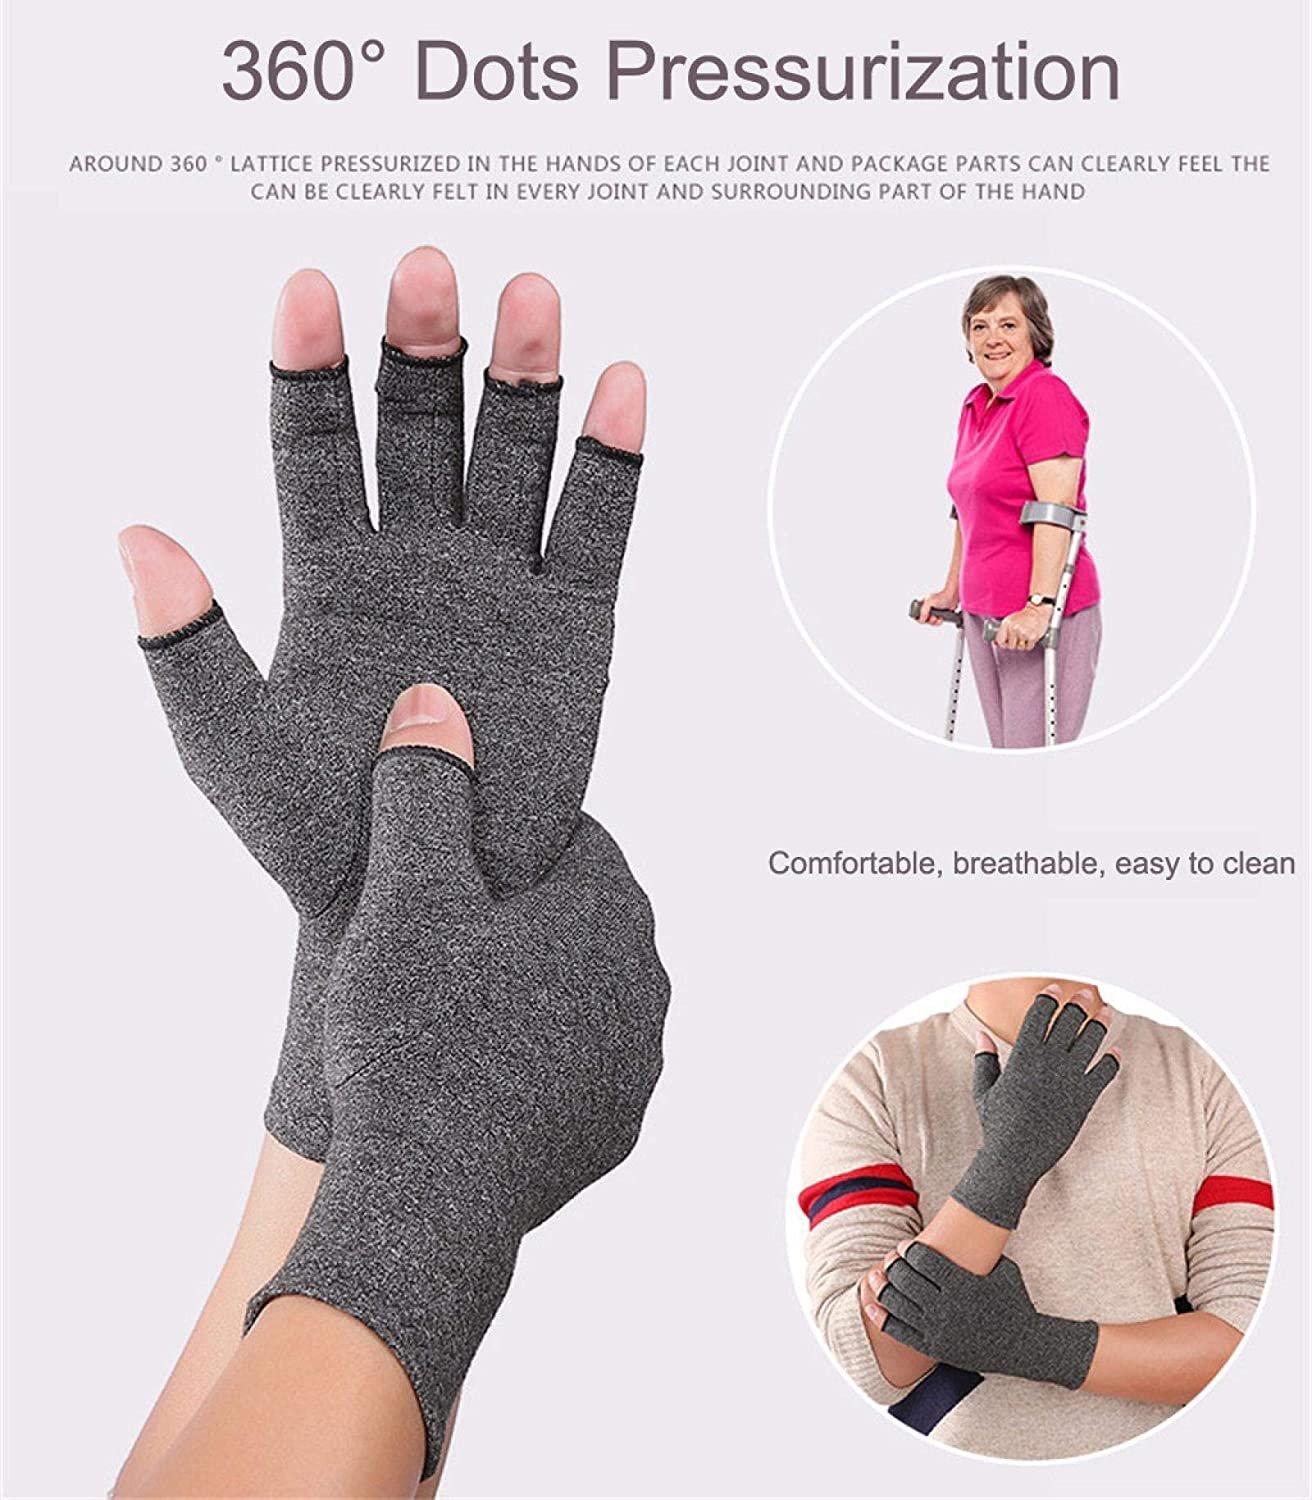 Men ZGHYBD 1pairs Arthritis Gloves S Women Rheumatoid Compression Hand Glove Compression Gloves Support and Warmth For Hands,For Typing and Daily Work